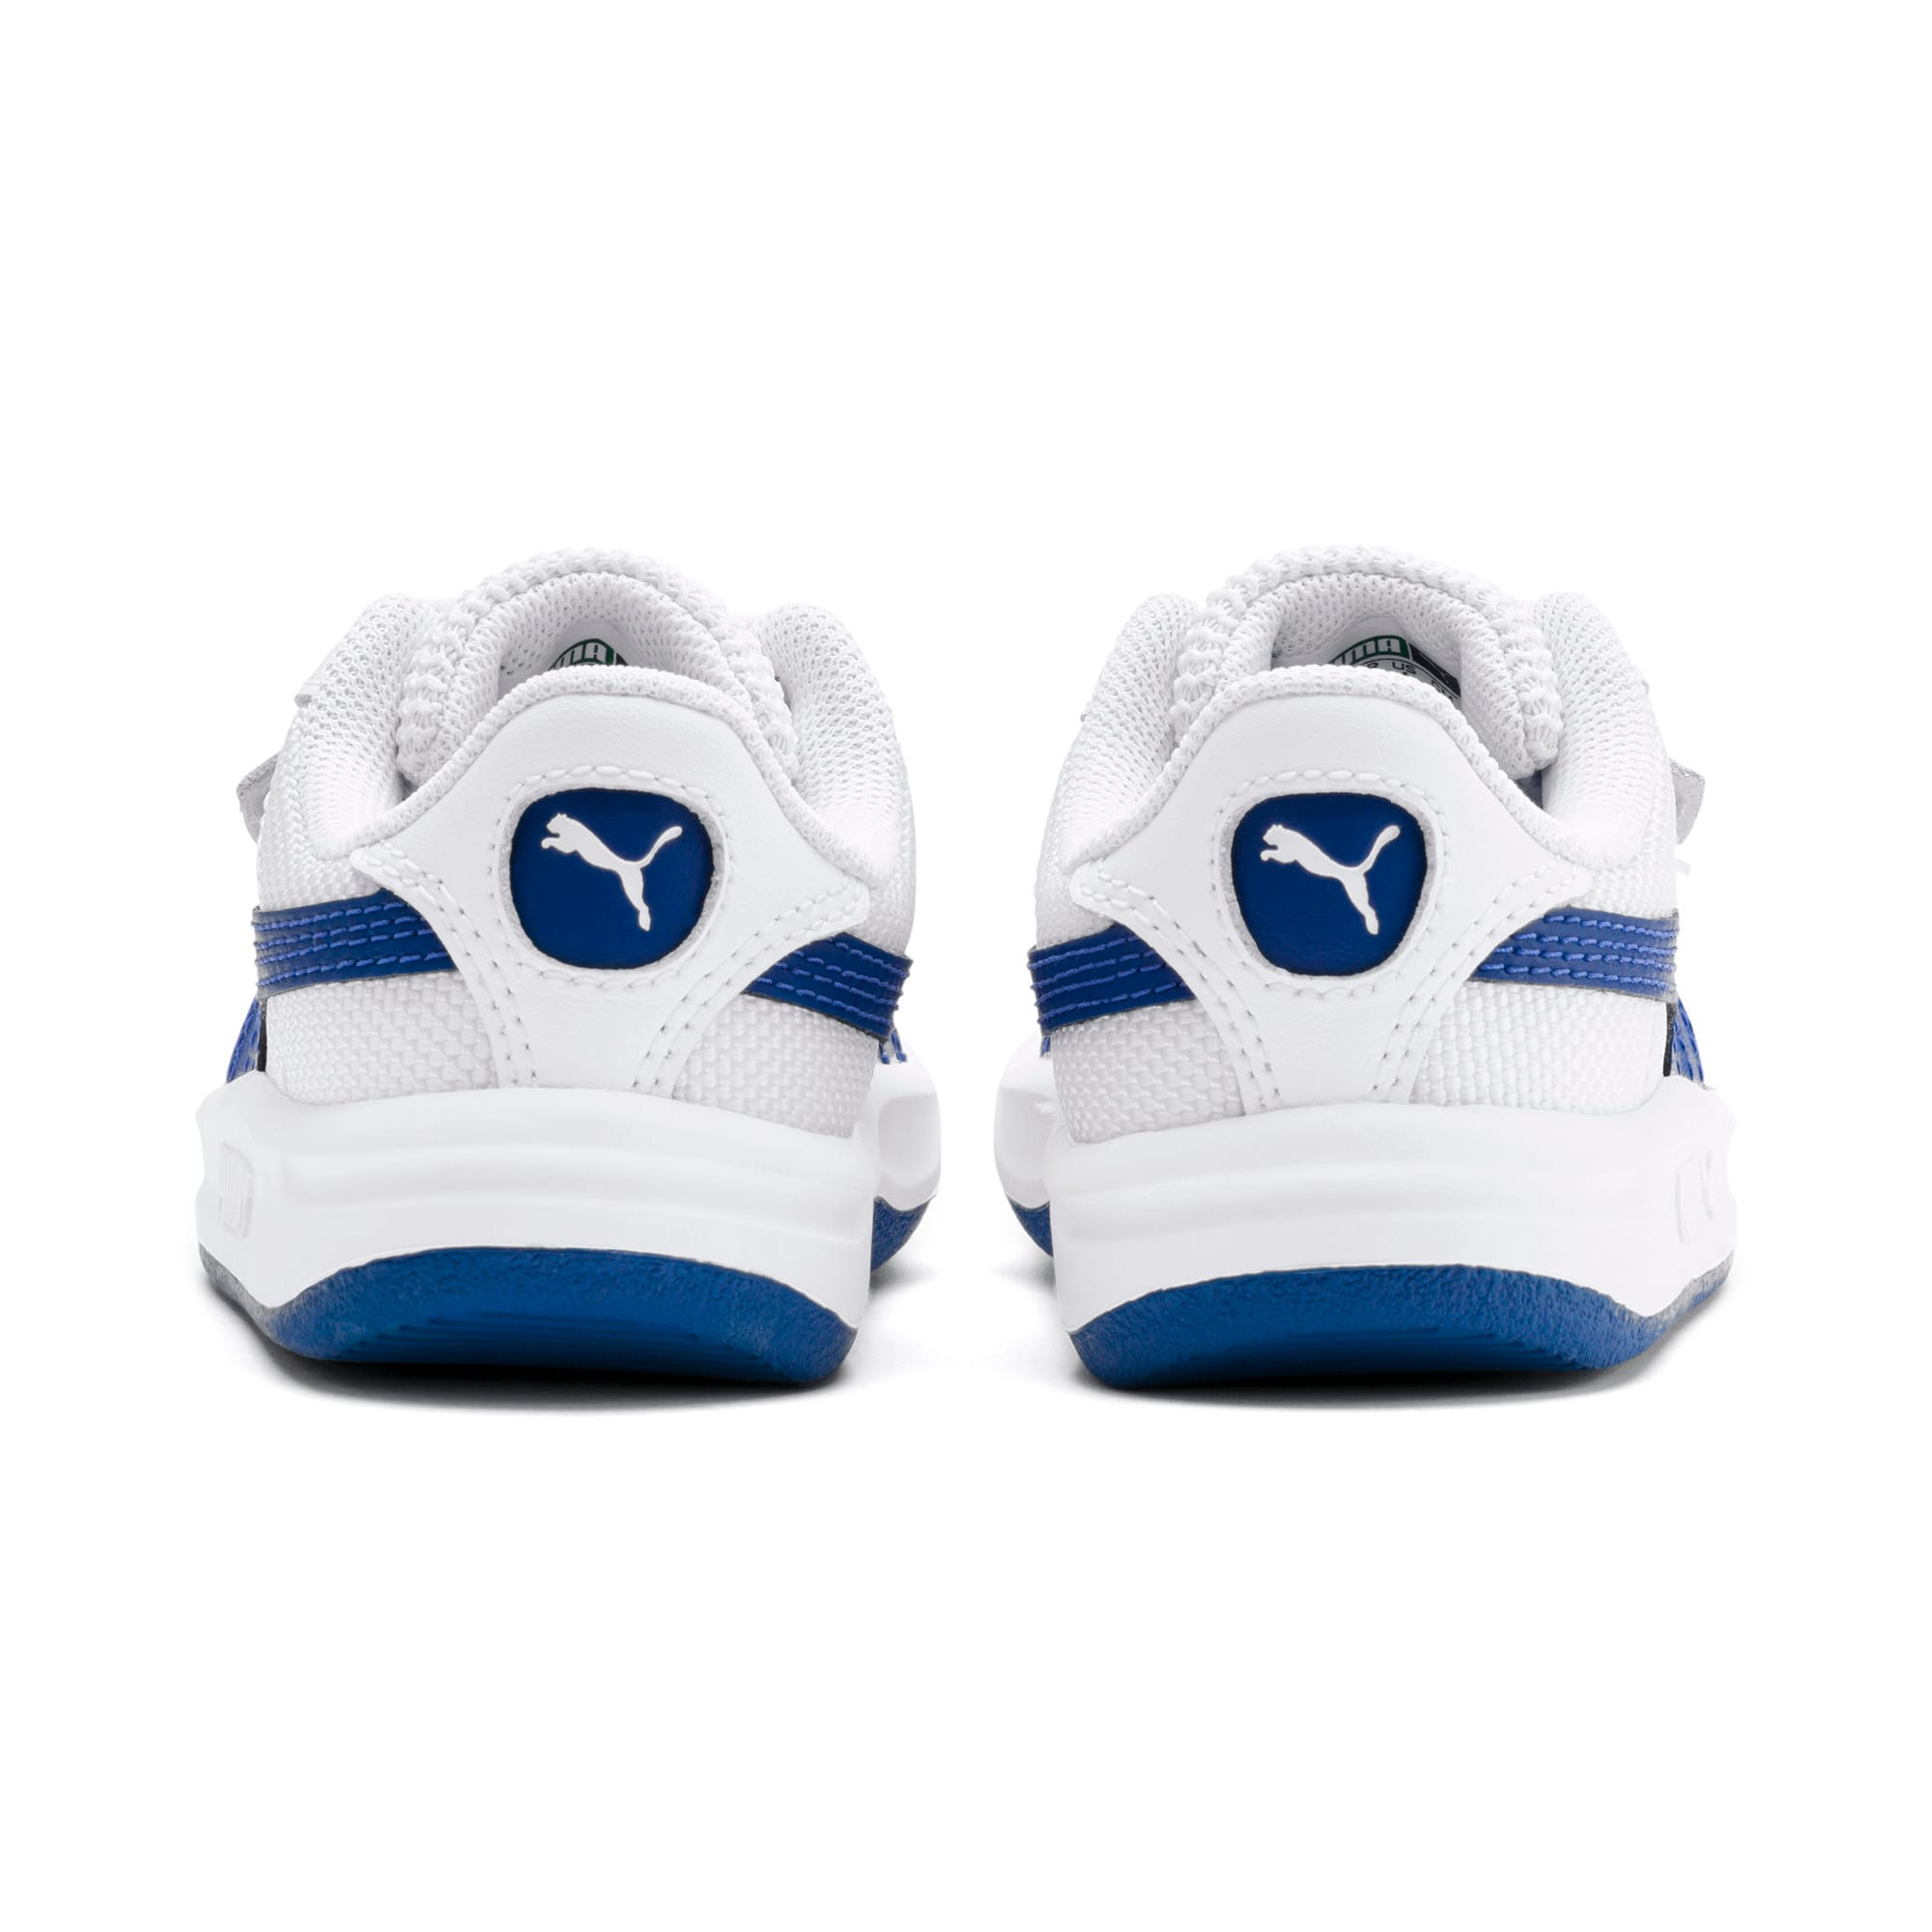 California Toddler Shoes, Puma White-Galaxy Blue, large